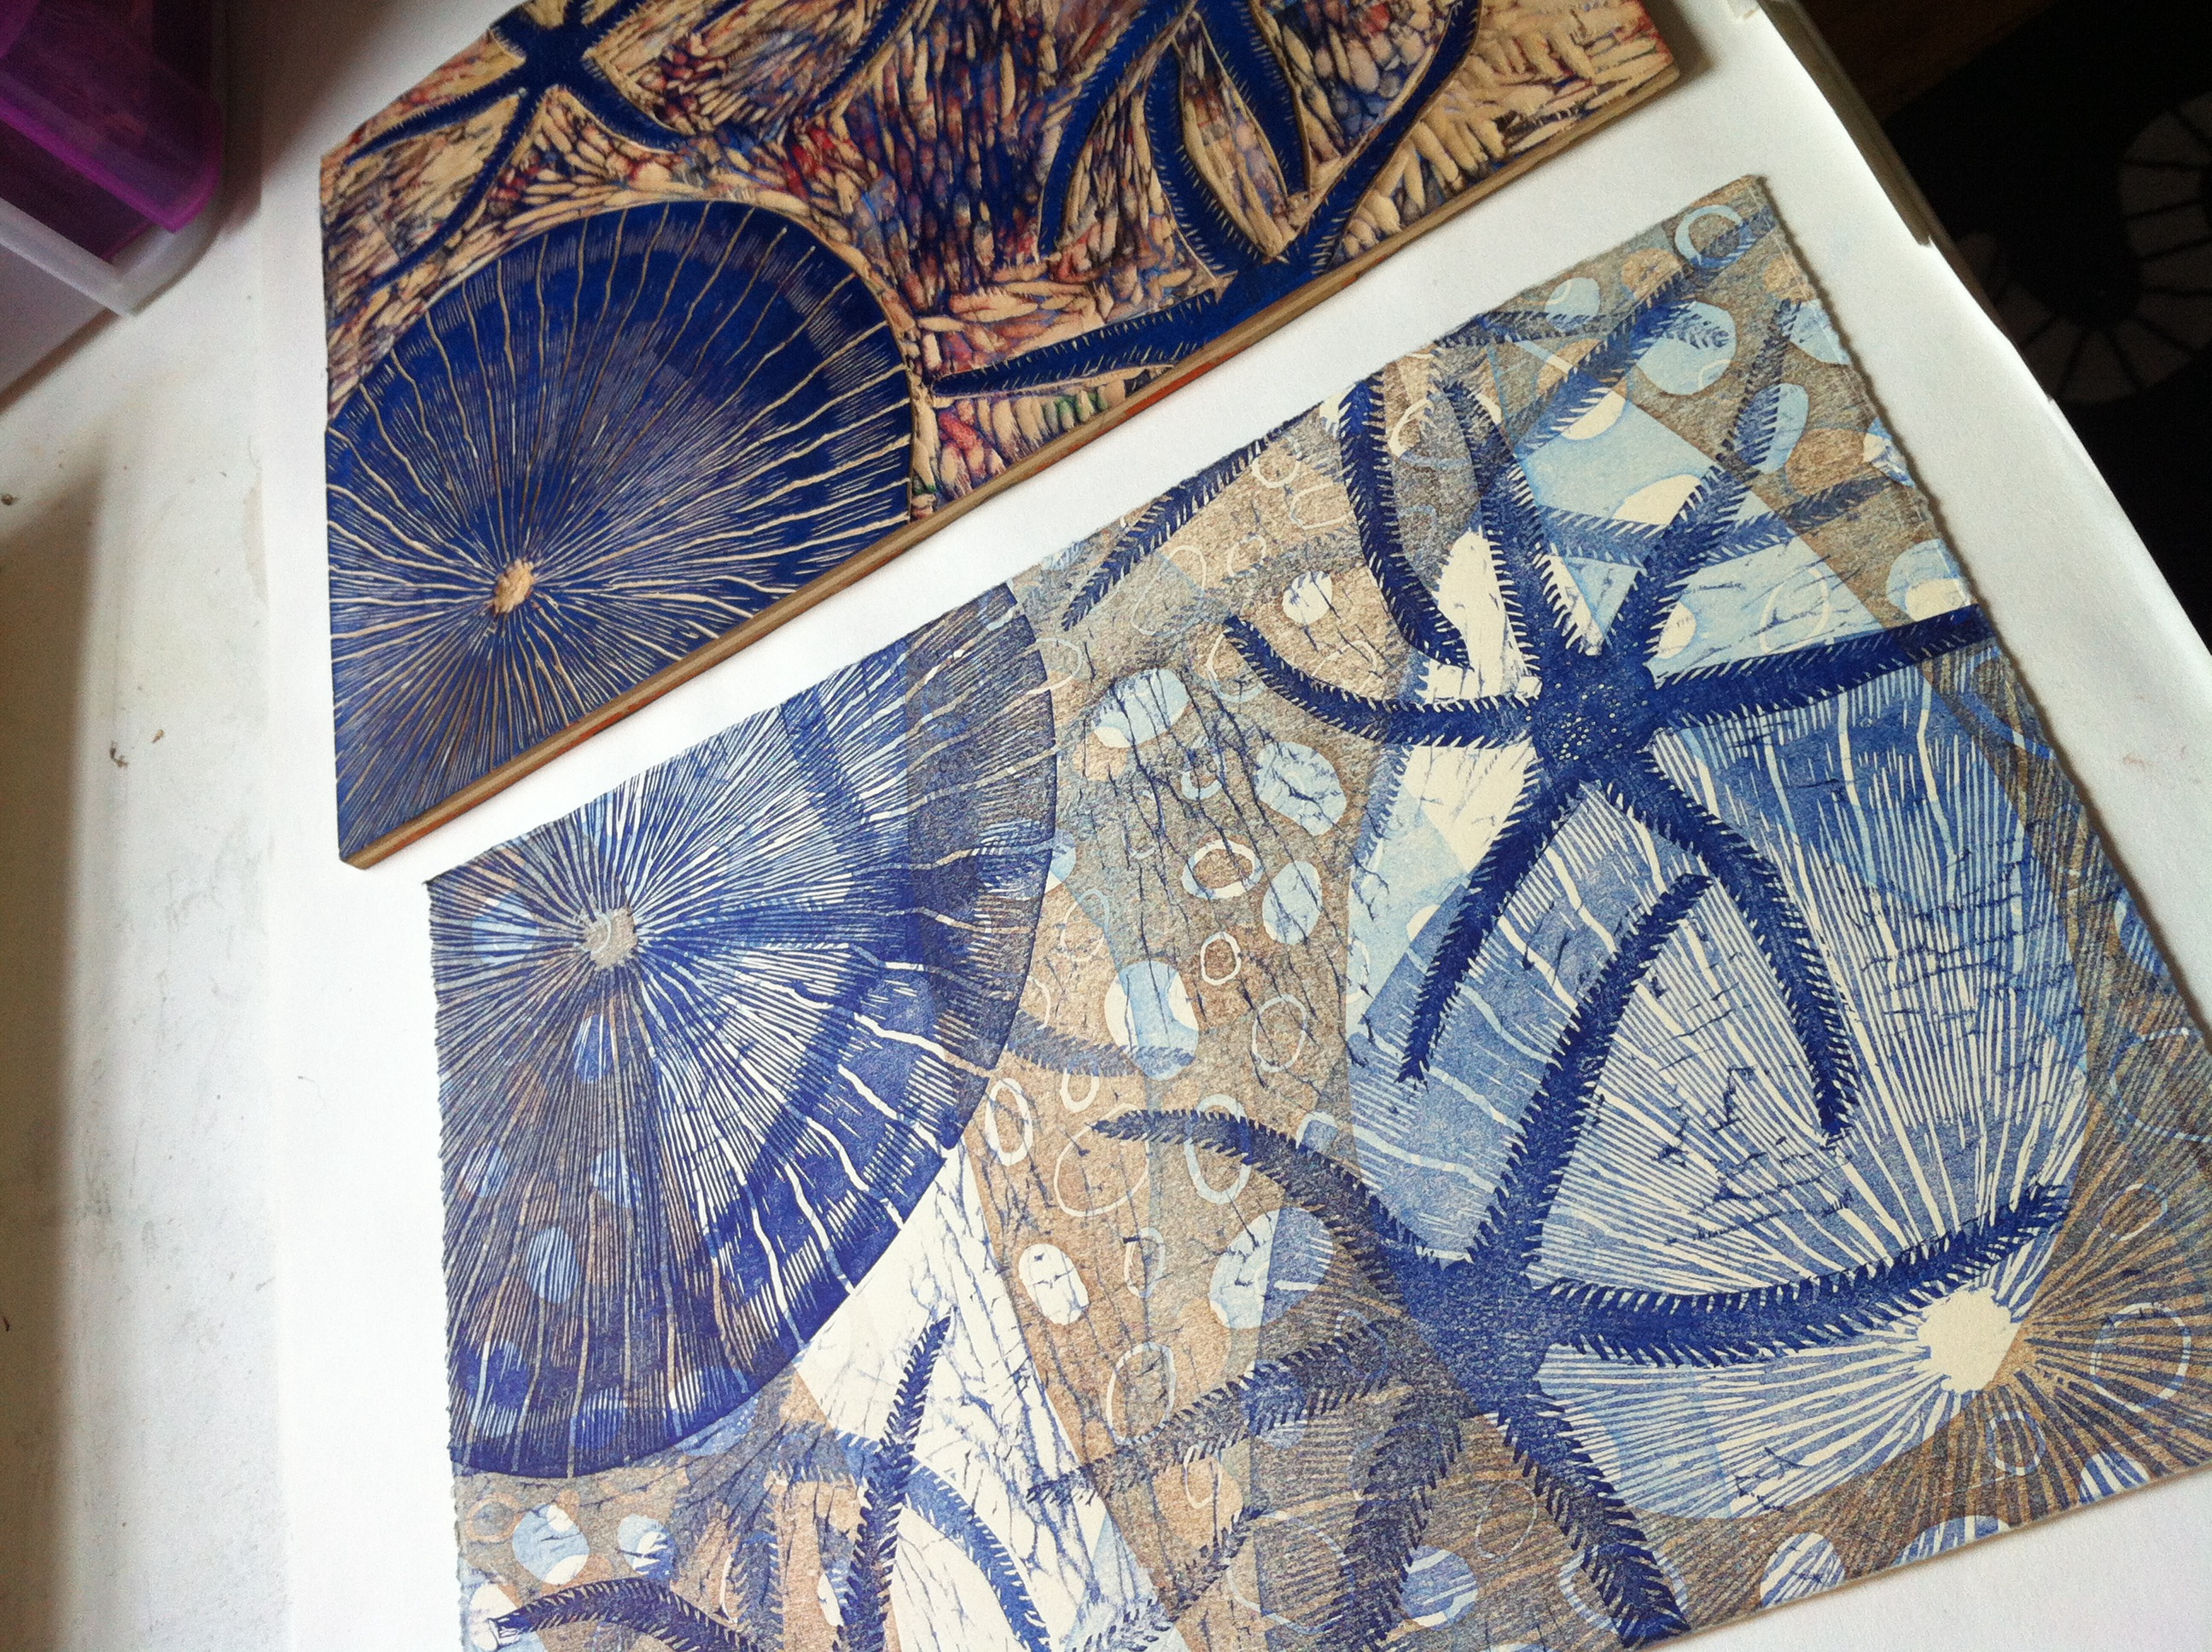 Original block print next to the carved woodblock used in the layers.